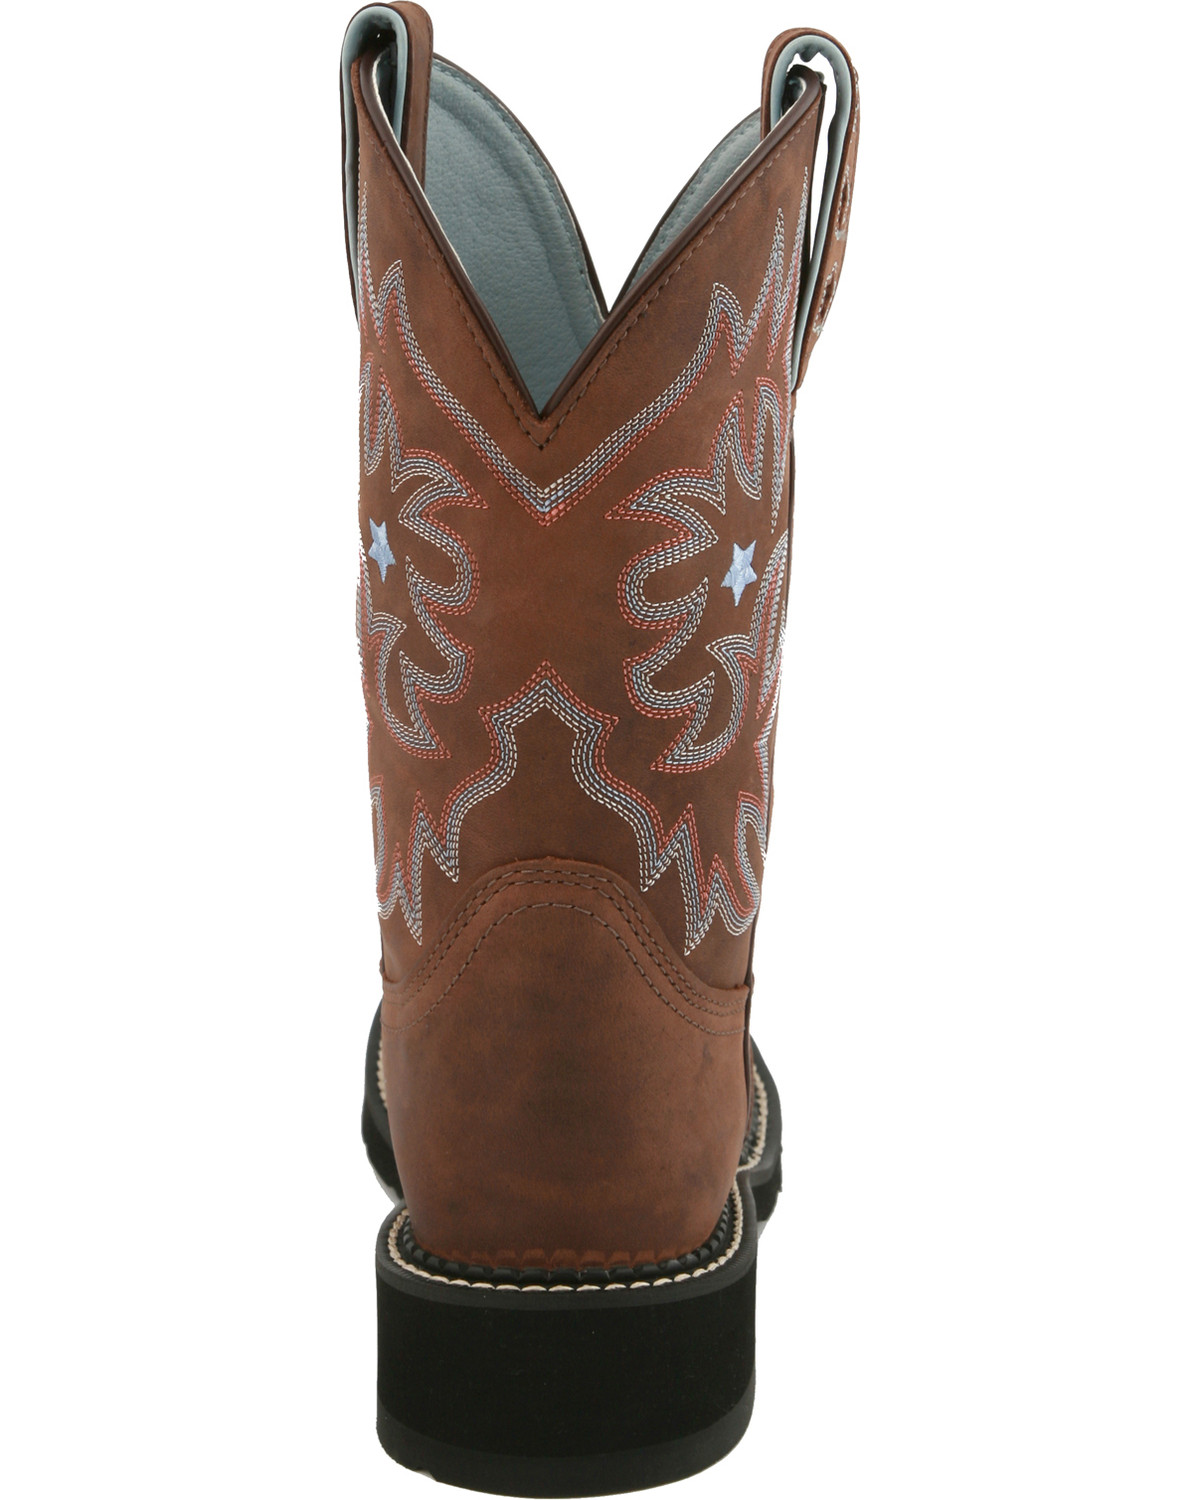 Ariat Driftwood ProBaby Boots - Country Outfitter